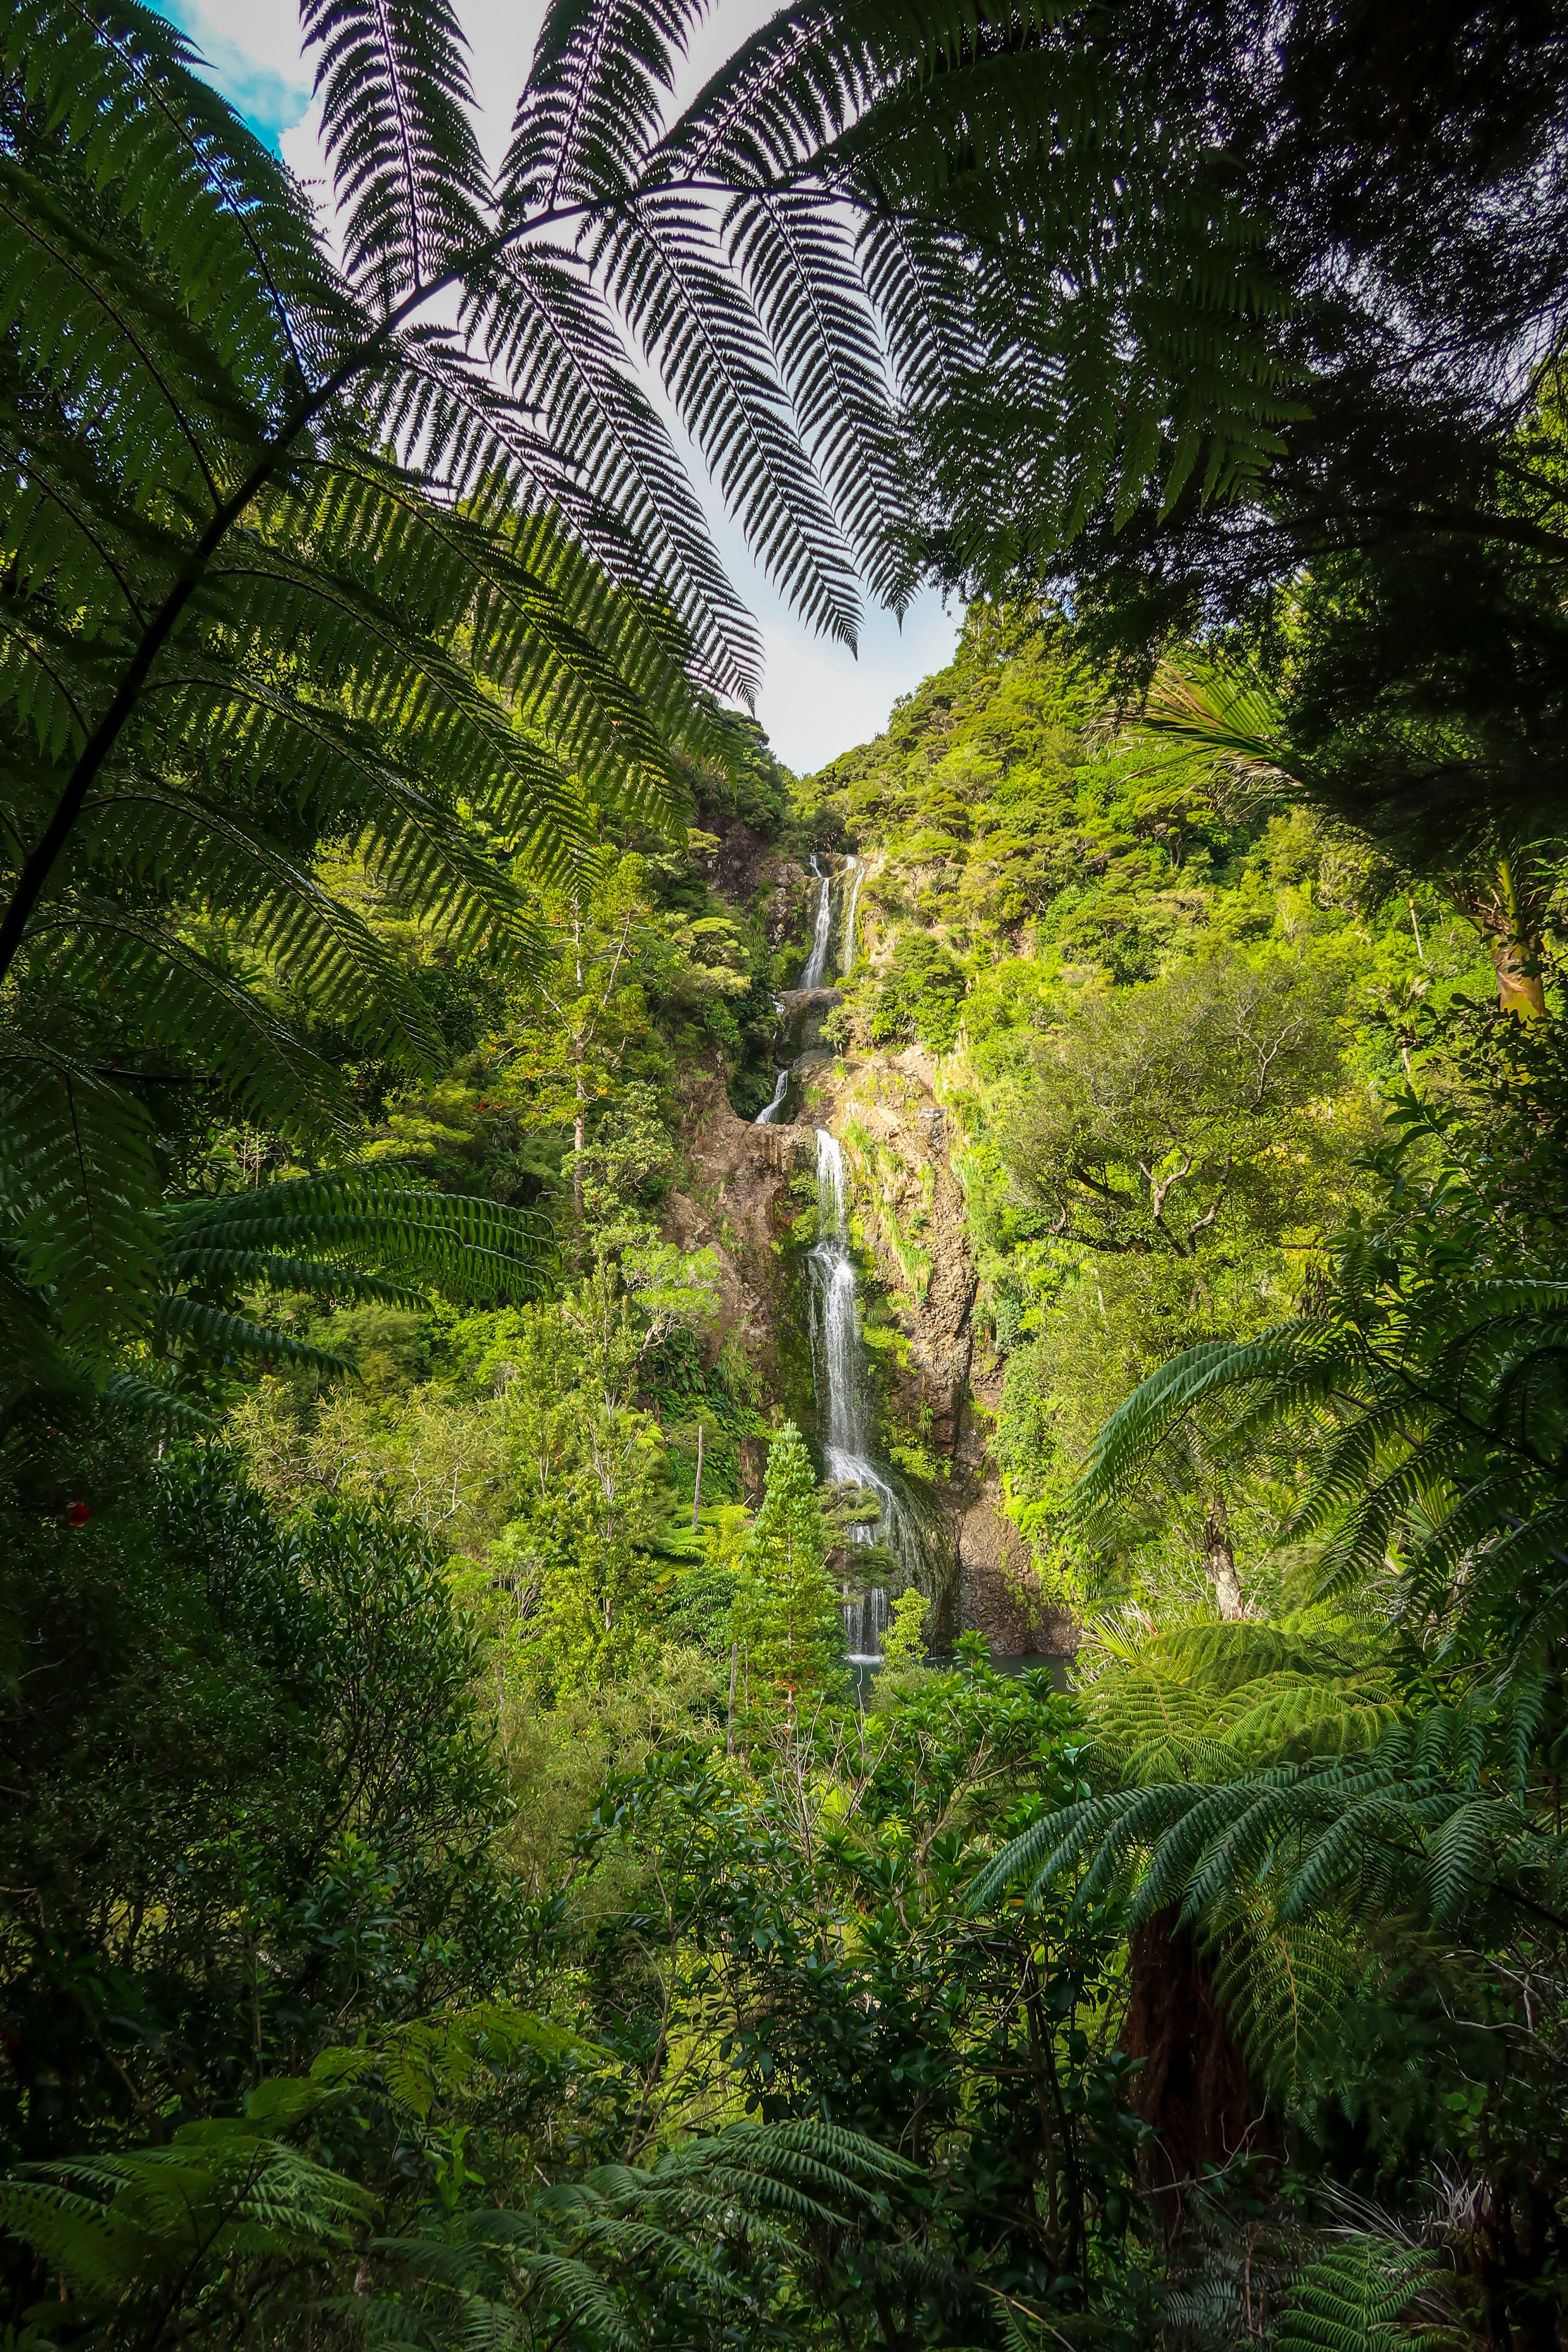 64778 download wallpaper Nature, Waterfall, Jungle, Tropics, Trees, Bush screensavers and pictures for free